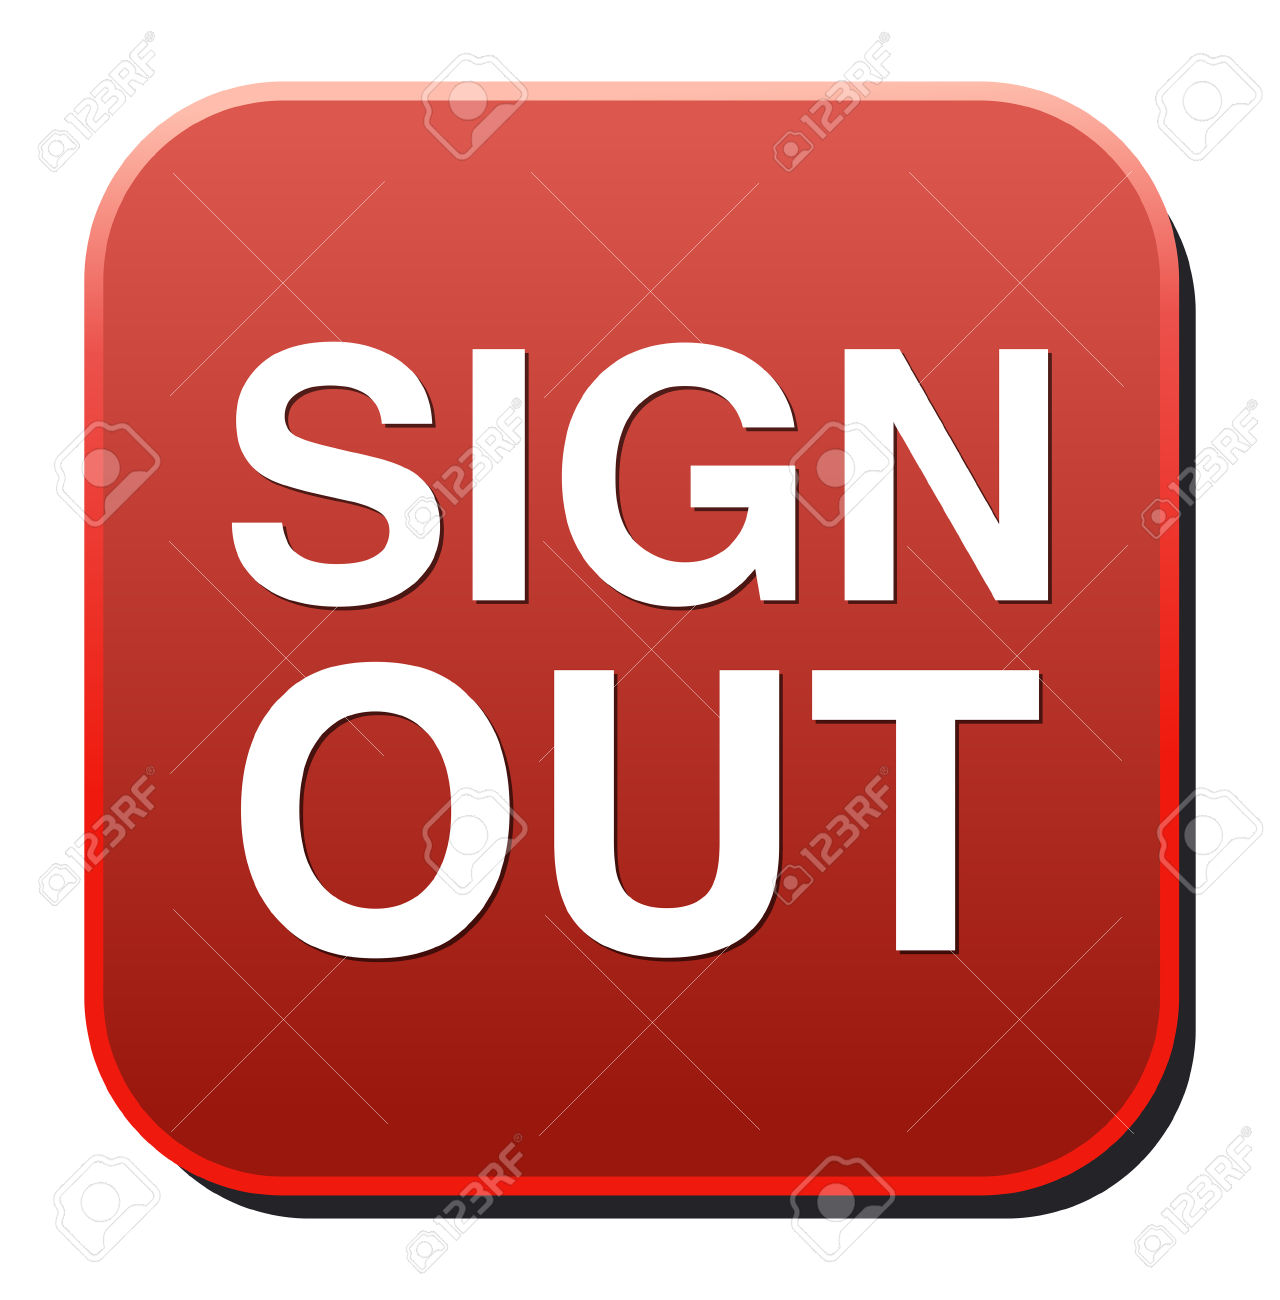 Sign Out Button Royalty Free Cliparts, Vectors, And Stock.